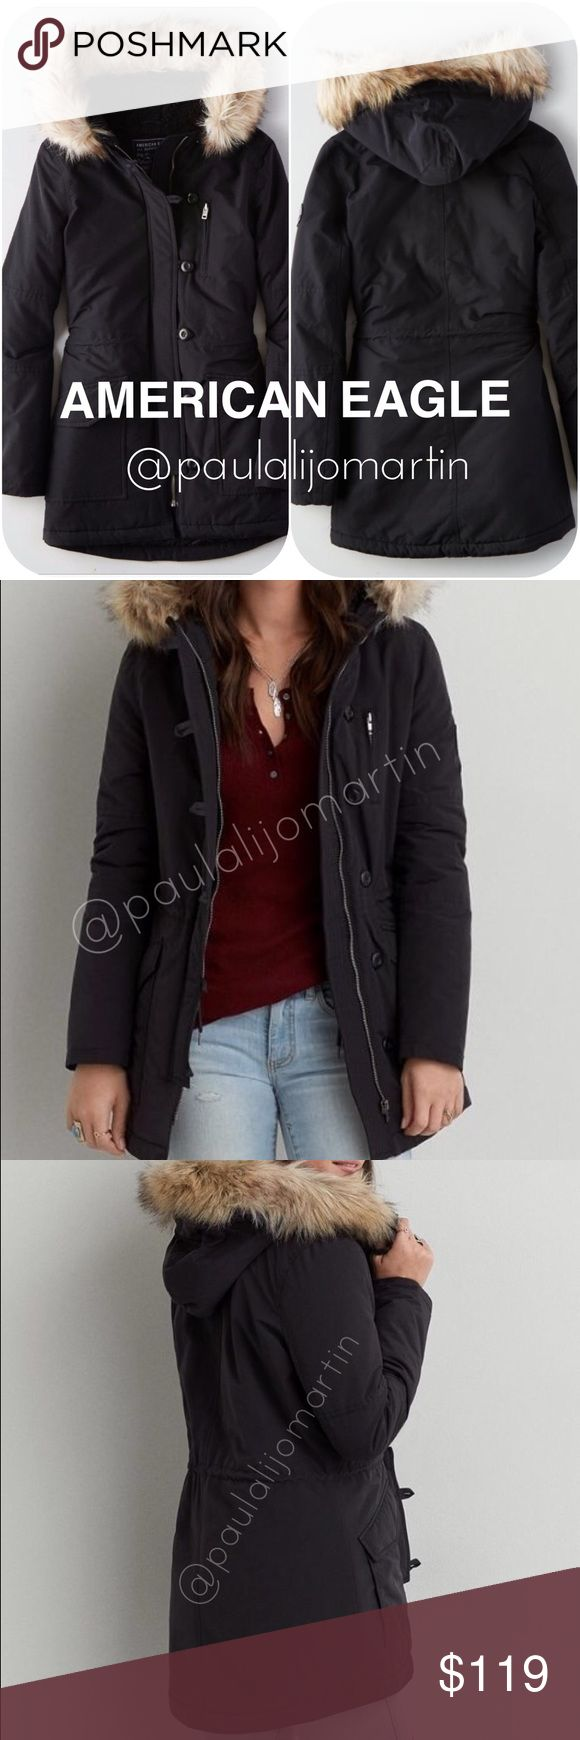 FINAL SALE NWT! American Eagle BLACK Parka Jacket As you can see in the photo TAG is missing but extra button are still attached.  The jacket is brand new  - Water resistant and windproof - Adjustable cinched waist - Interior pocket at chest - Fleece lined pockets - Removeable faux fur trim at hood - Faux sherpa lining at interior - Adjustable drawstring at waist  More Stock available:  - Size XS One Green  - Size S  ONE green  - Size MED One GREEN   NO TRADES 🚫  If you want more photos…